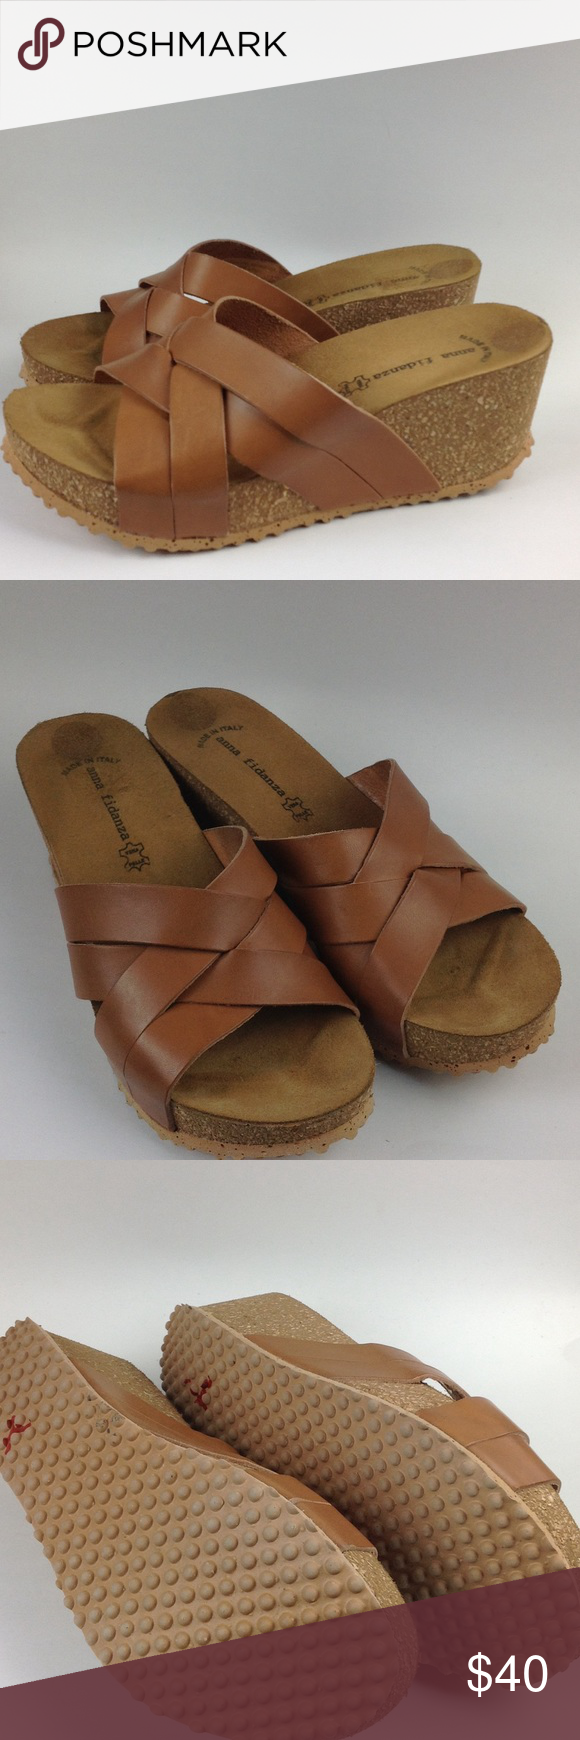 Anna Fidanza Sandal Wedge Shoes Size 8 Leather Really great condition Light weight and super comfy Anna Fidanza Shoes Sandals